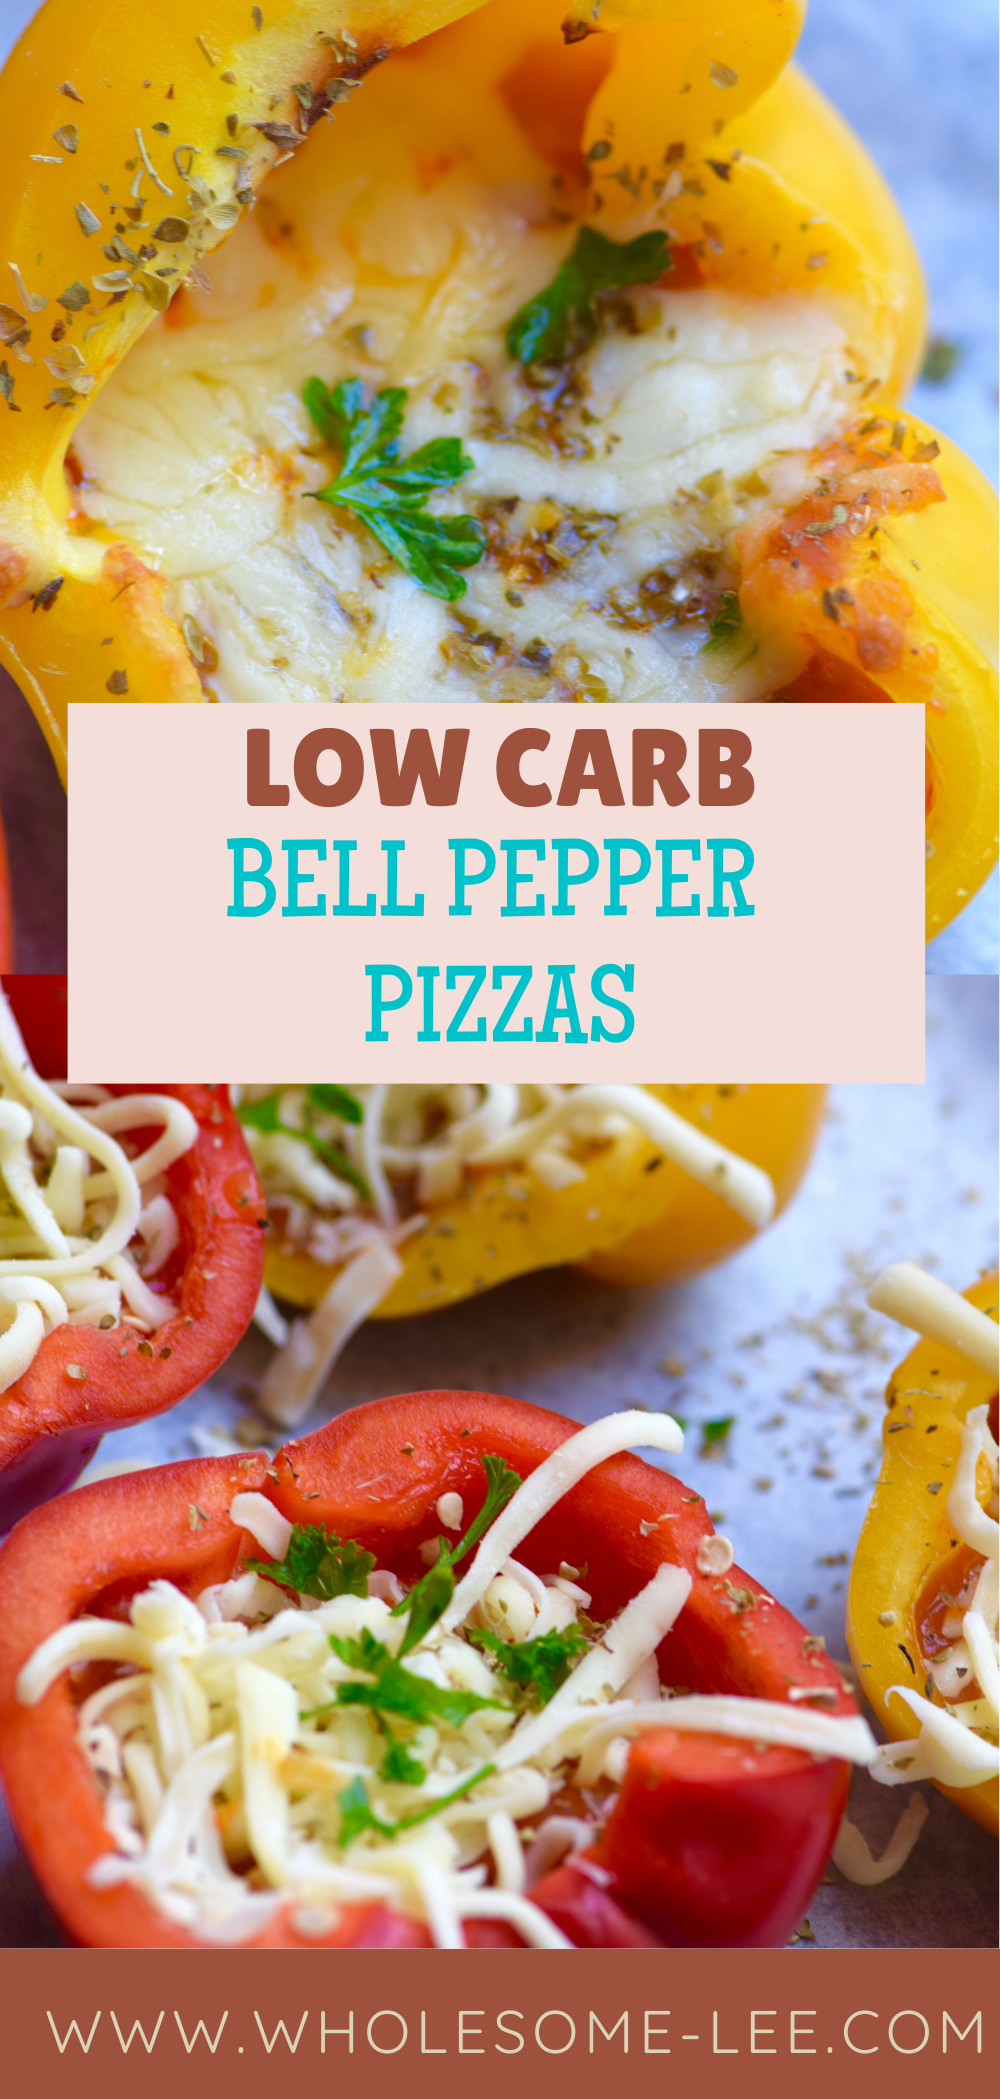 Low Carb Bell pepper pizzas